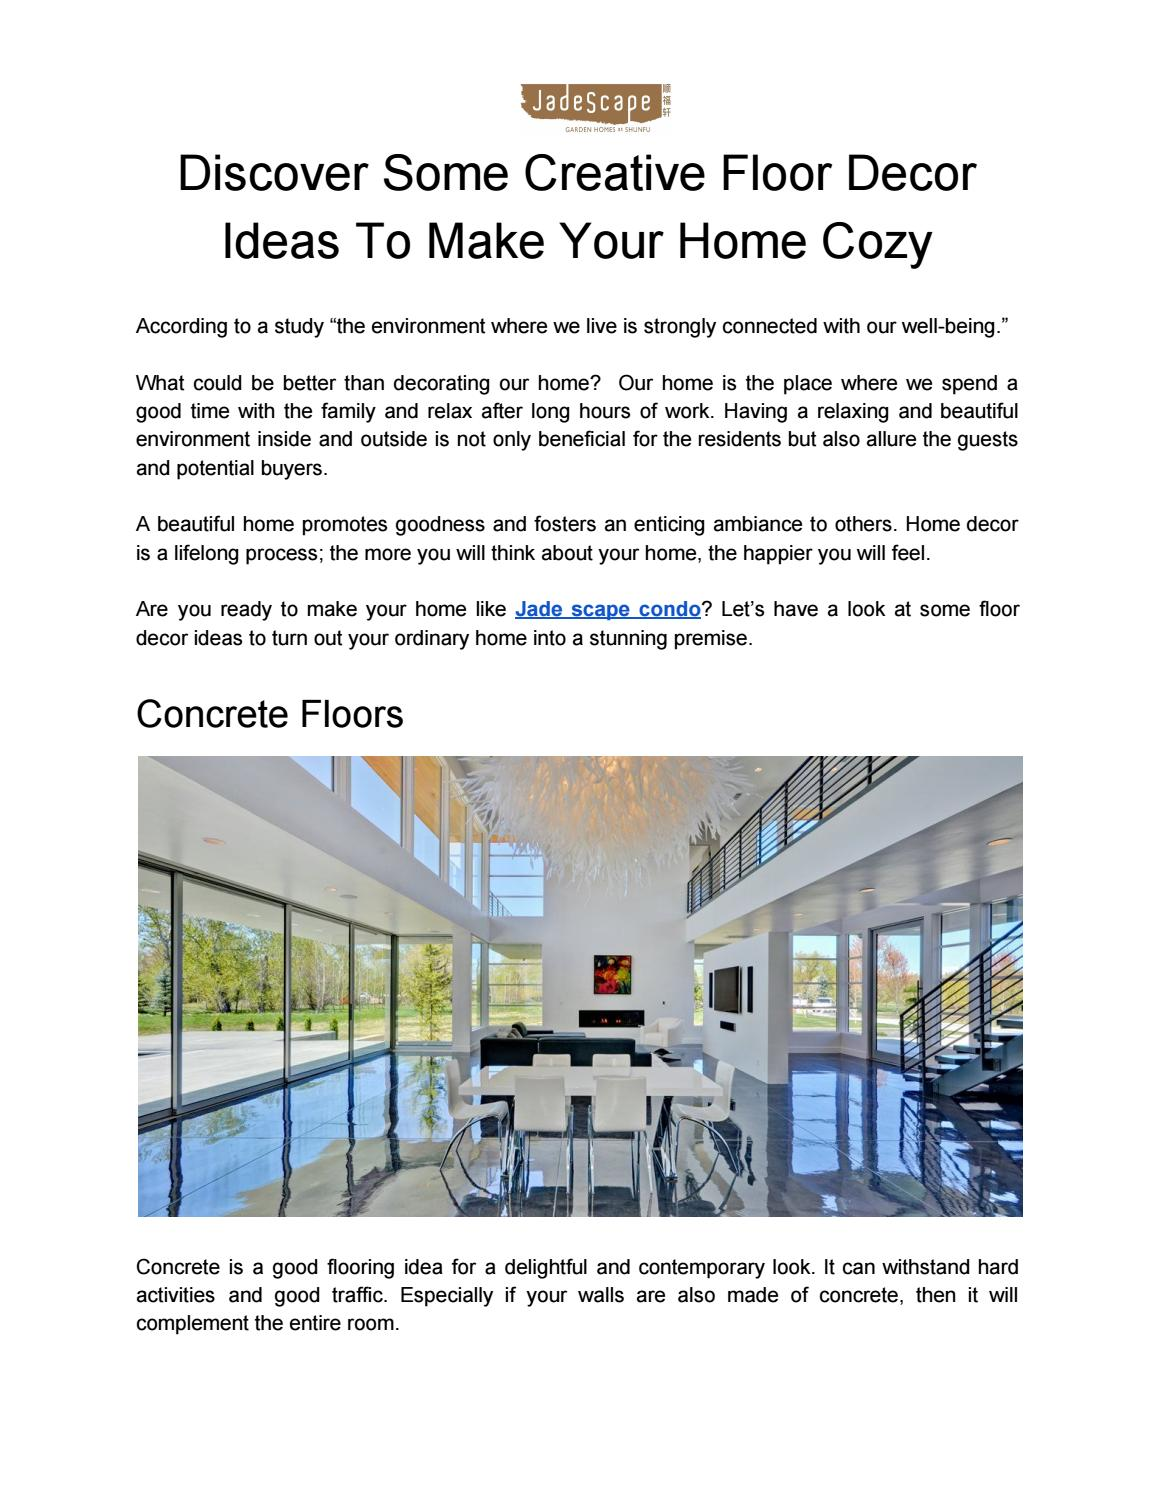 Discover Some Creative Floor Decor Ideas To Make Your Home Cozy By Jade Scape Issuu